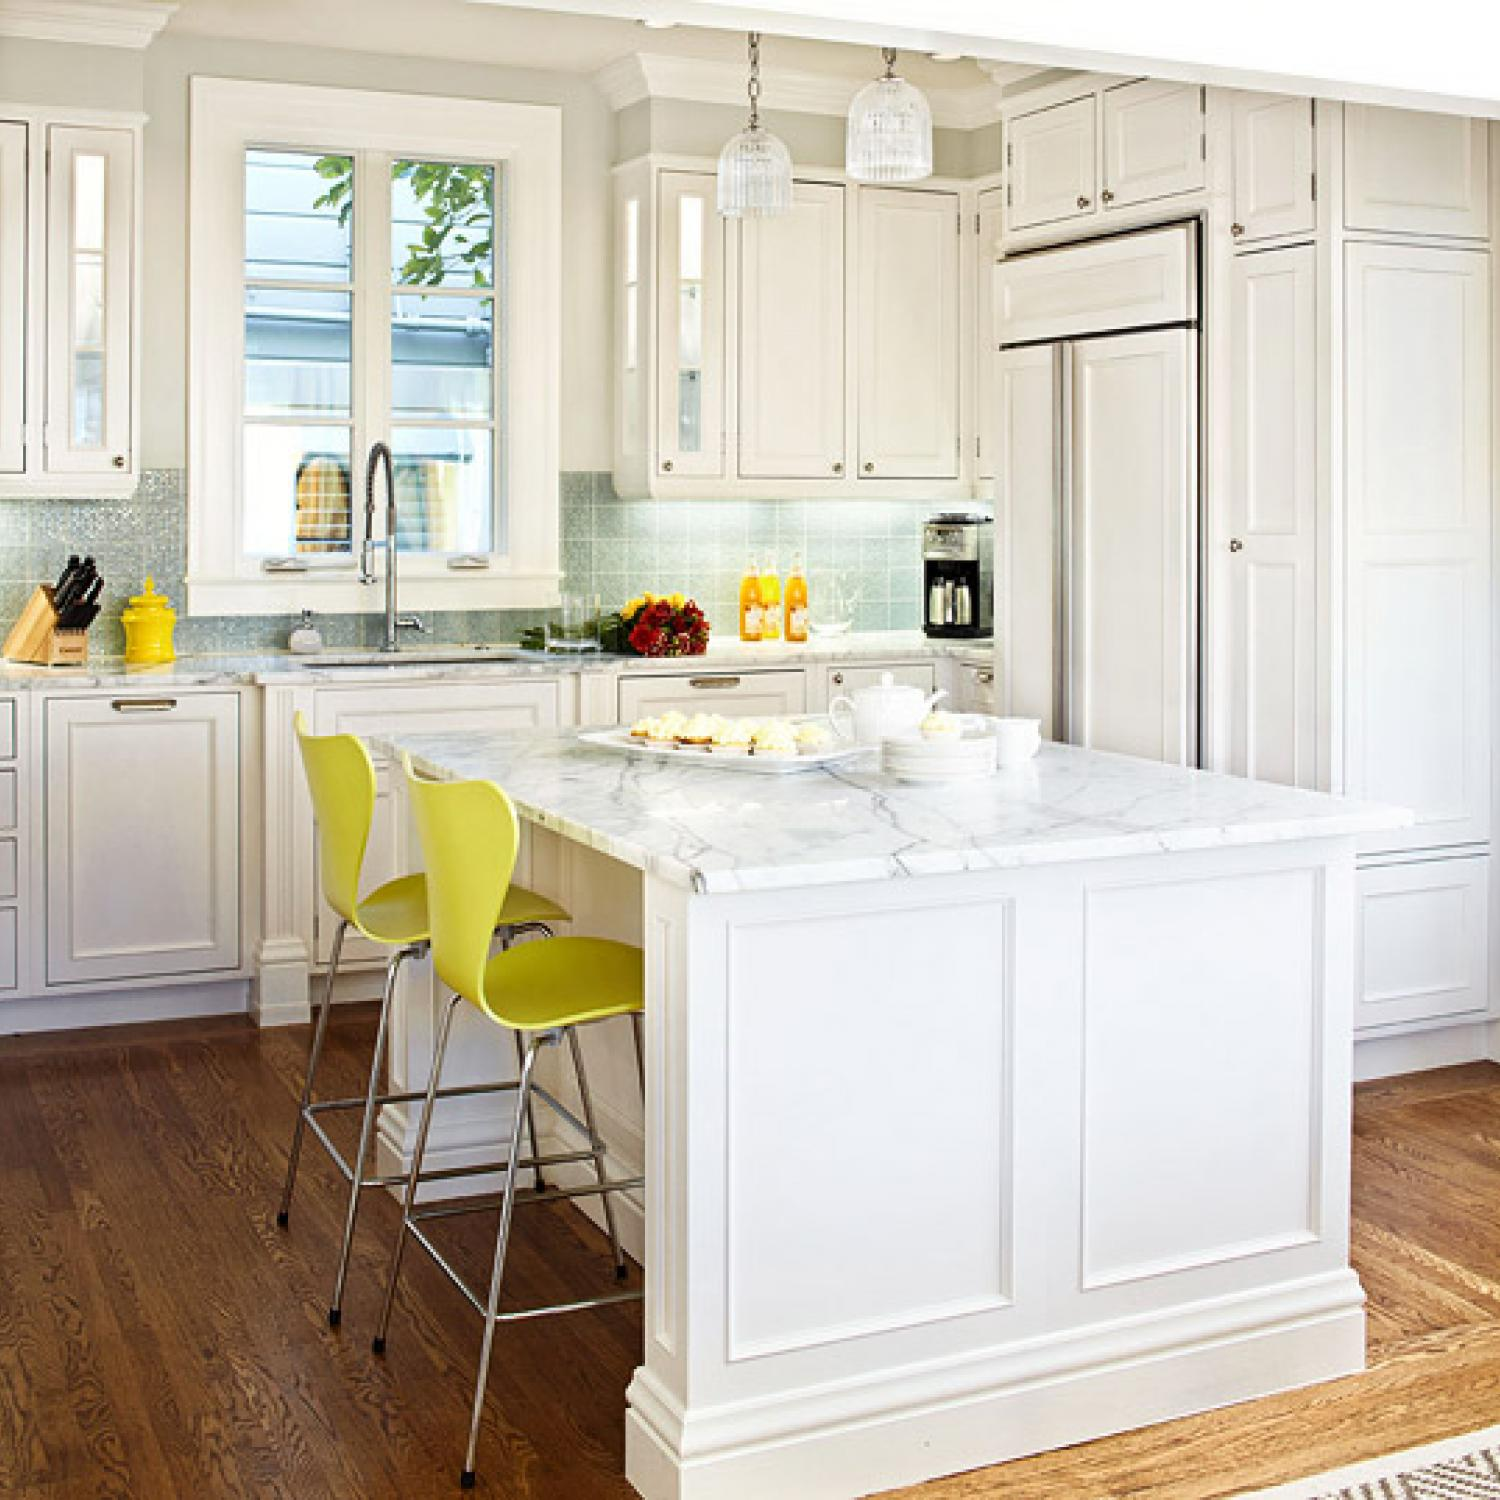 Home Kitchen Design Ideas ~ Design ideas for white kitchens traditional home